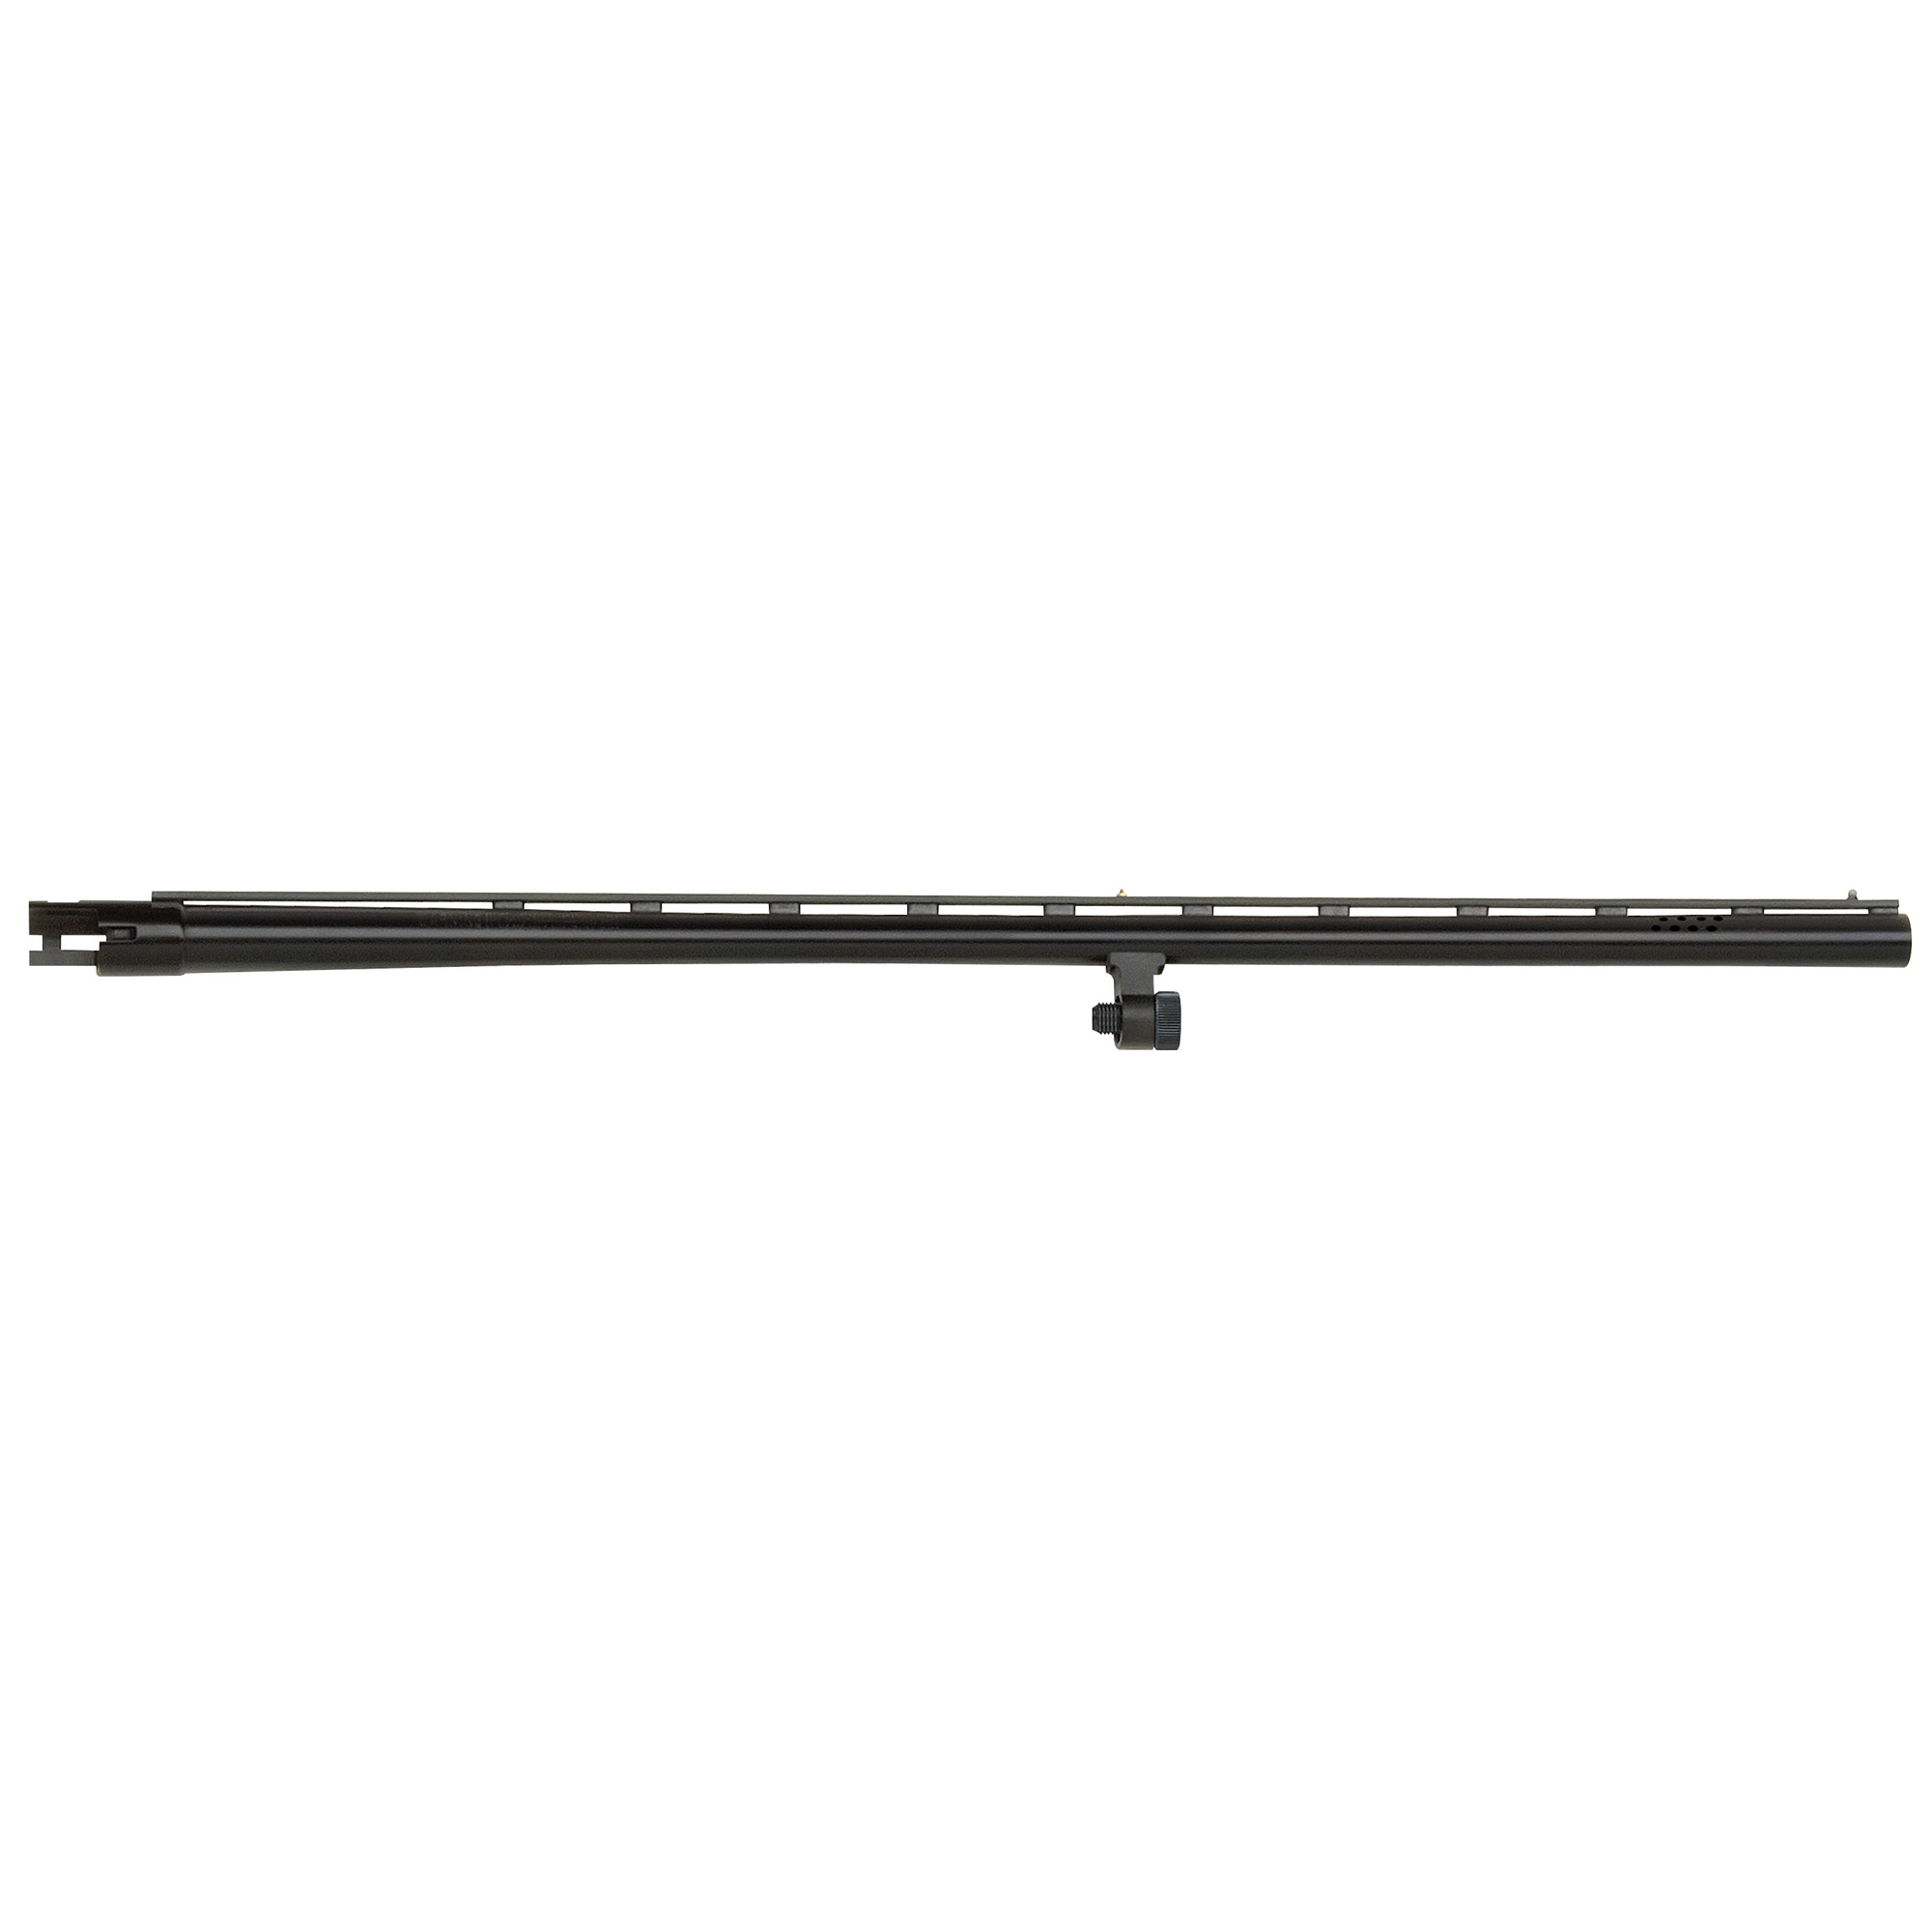 """28"""" All-Purpose barrel with vent rib"""" dual bead sights"""" smoothbore"""" and blued finish. Includes Accu-Choke set (Improved Cylinder"""" Modified"""" Full) and choke tube wrench. Compatible with 12 Gauge Mossberg 500 and Maverick 88 6-shot models."""